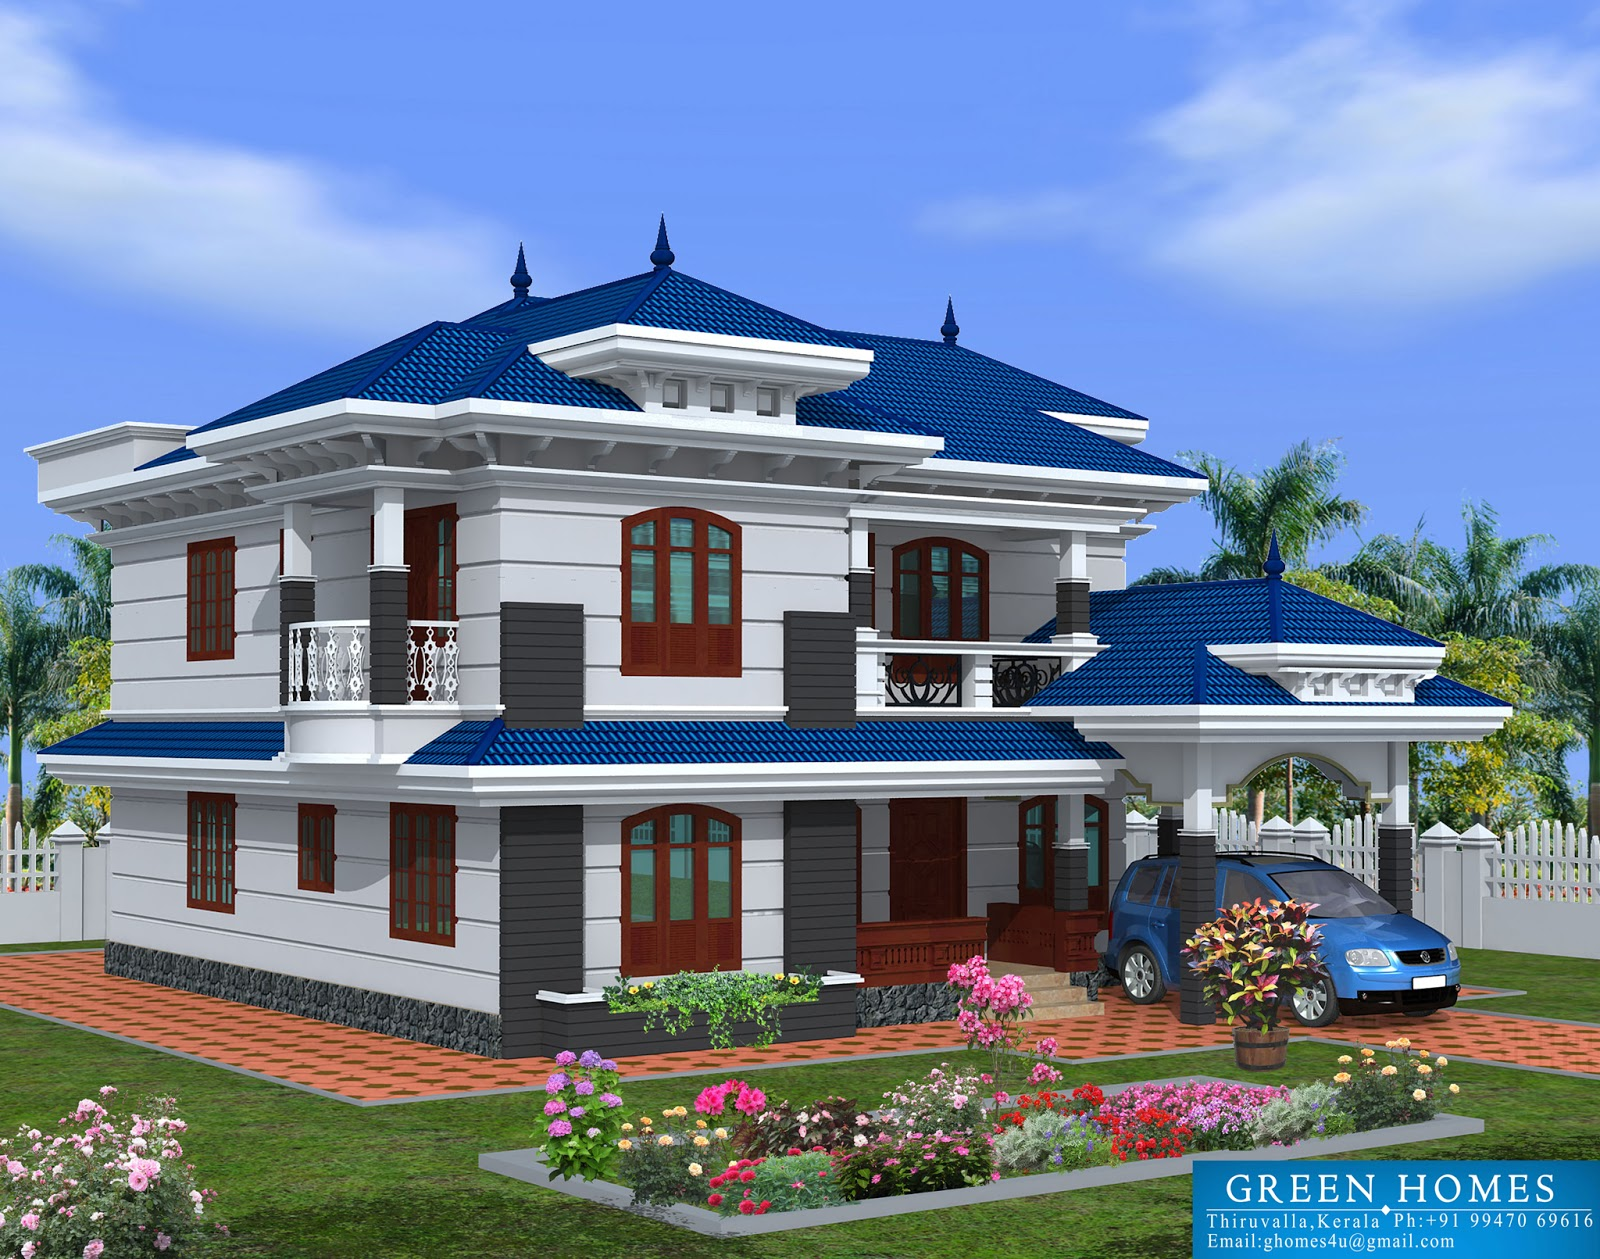 green homes beautiful kerala home design 2222sqfeet - Home Design Construction